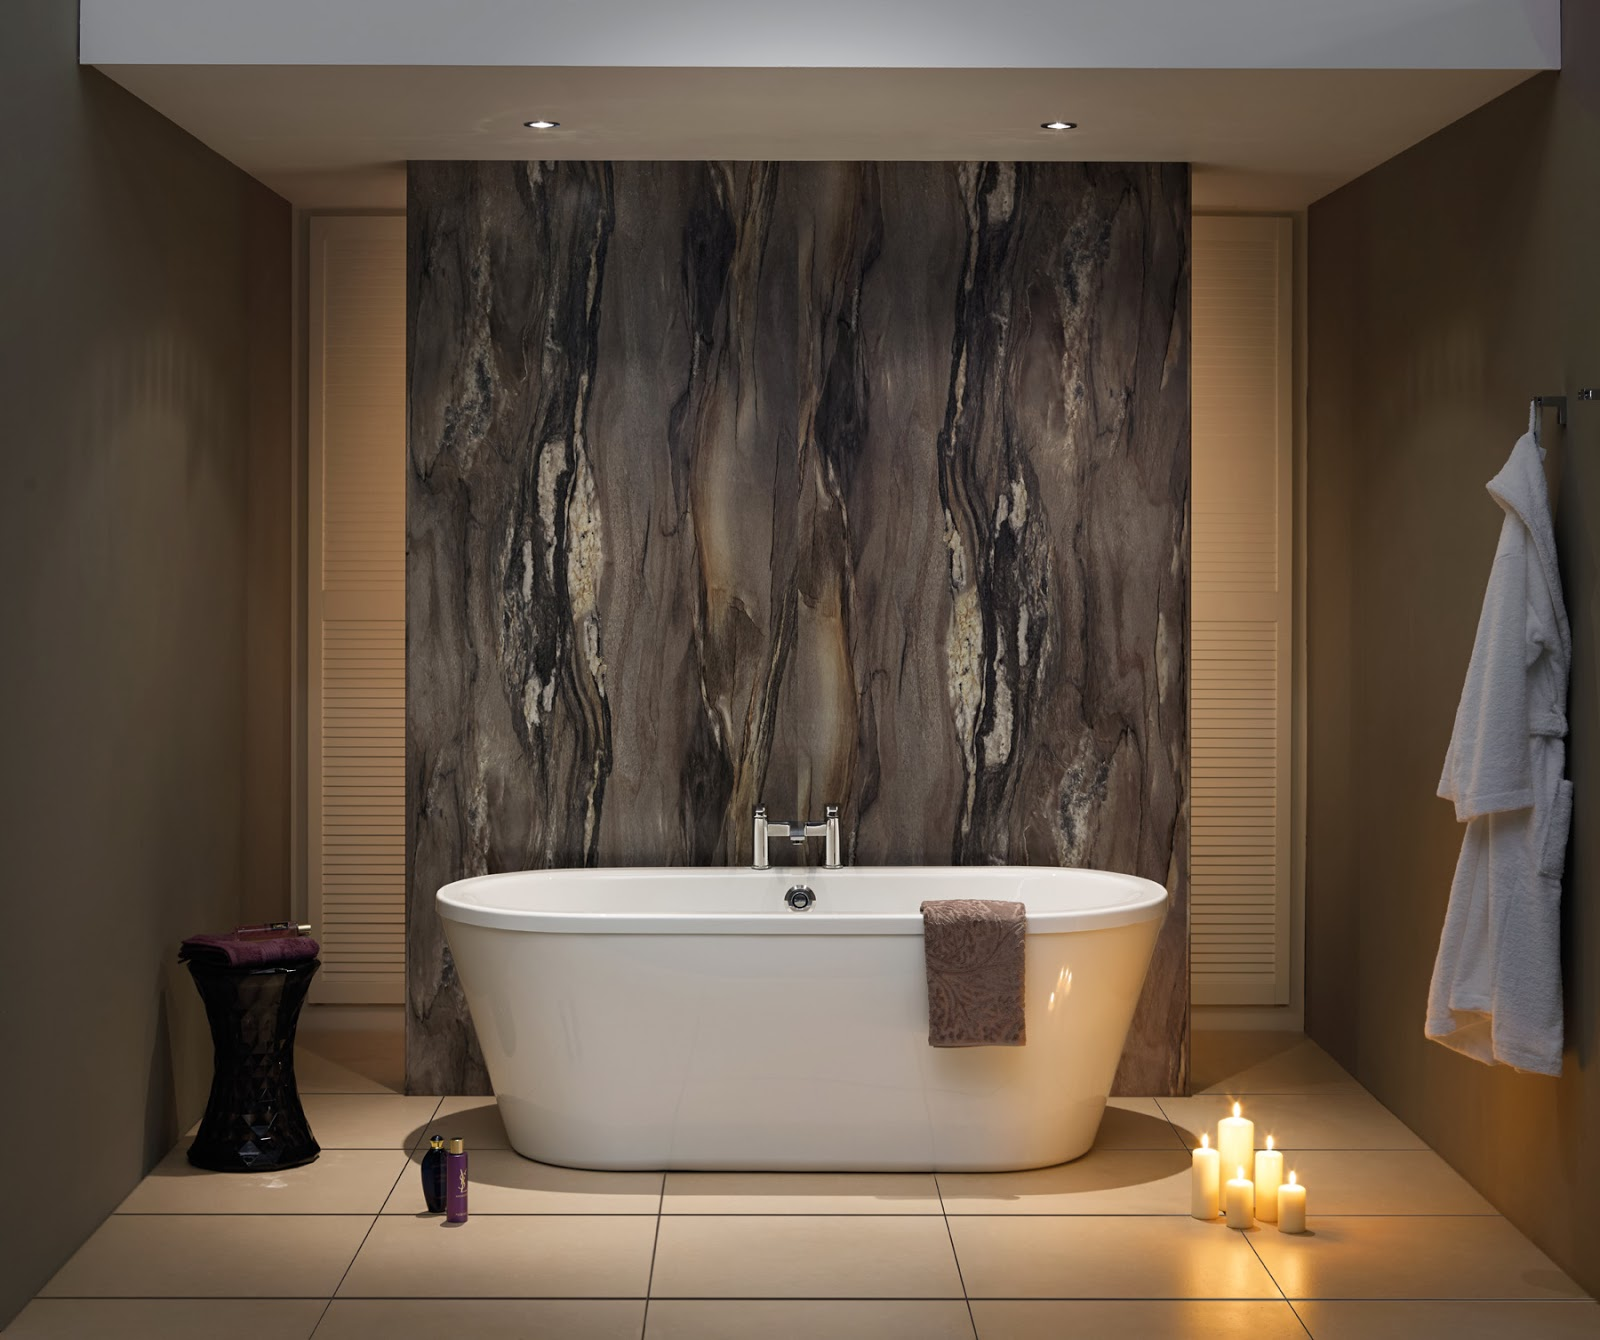 Bushboard relaunchs its Nuance range of bathroom surfaces ...